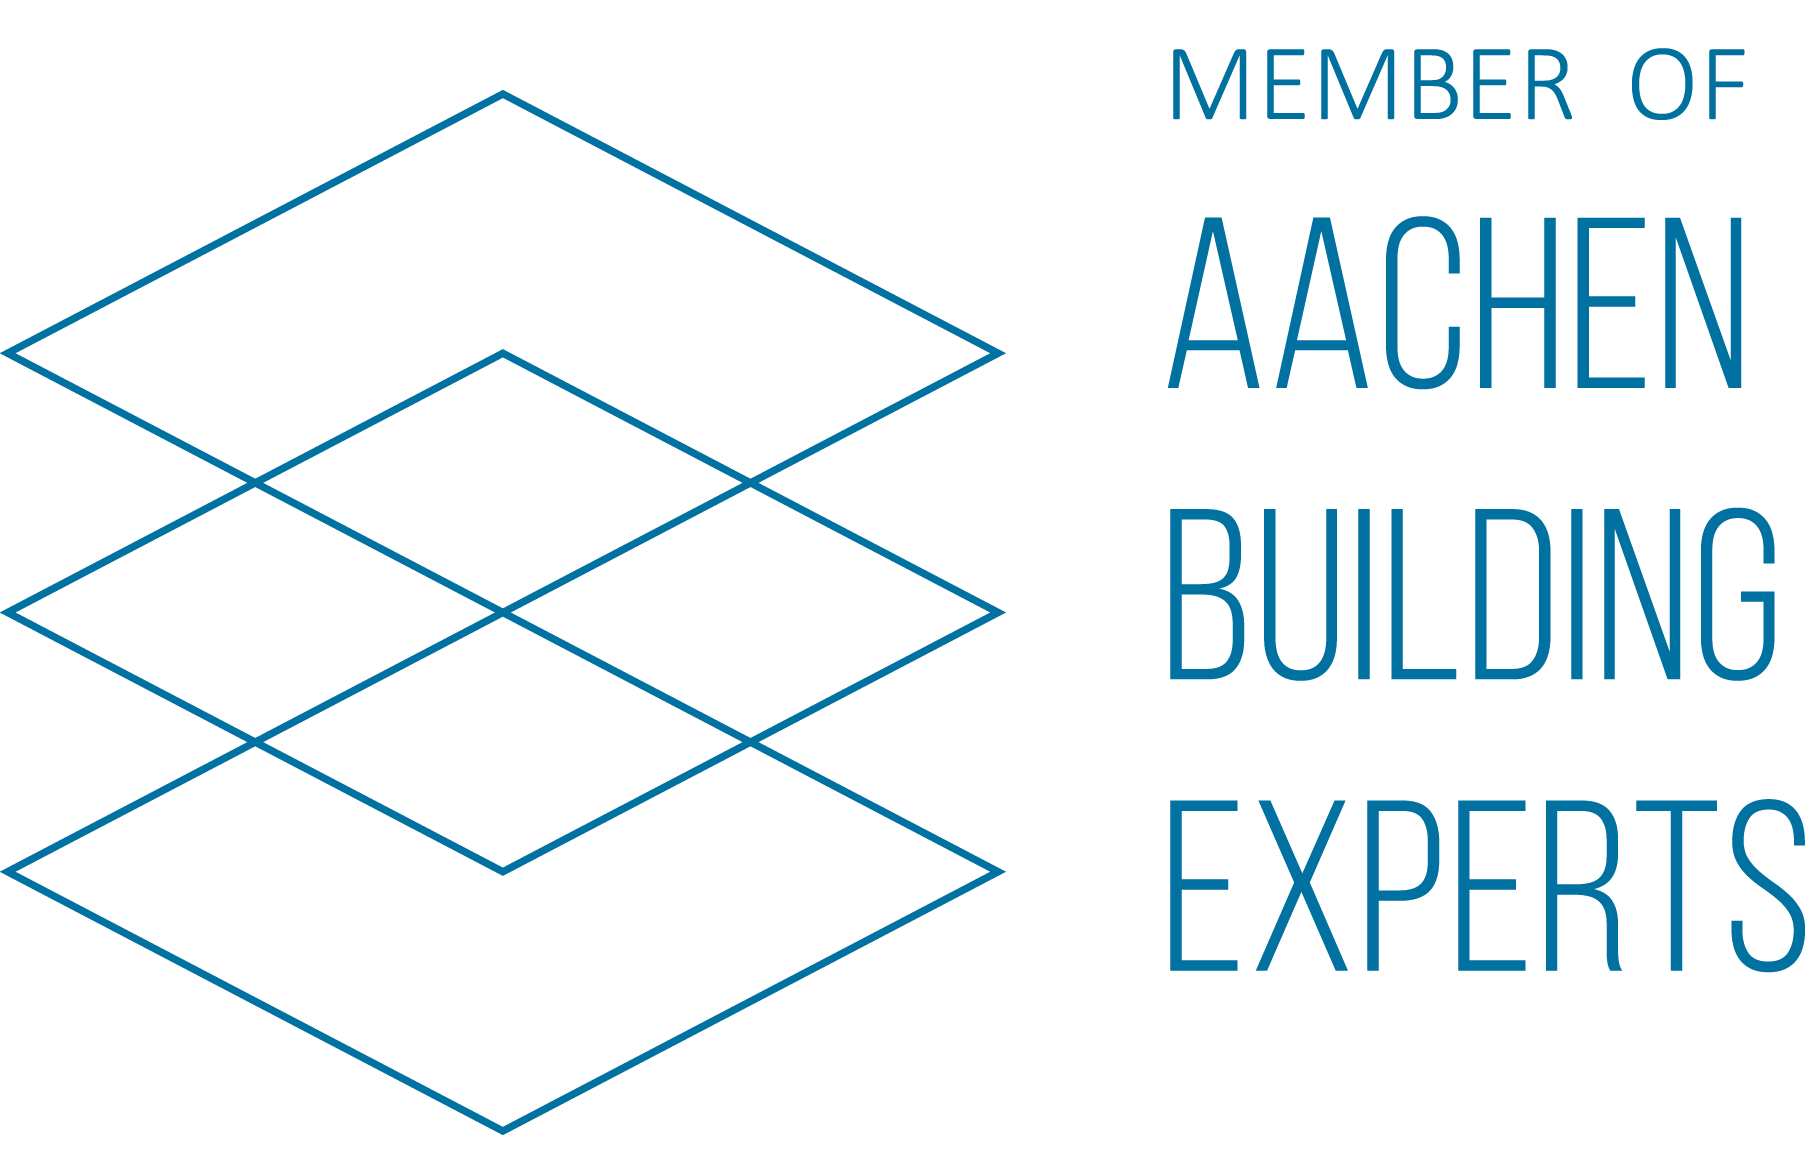 Aachen Building Experts